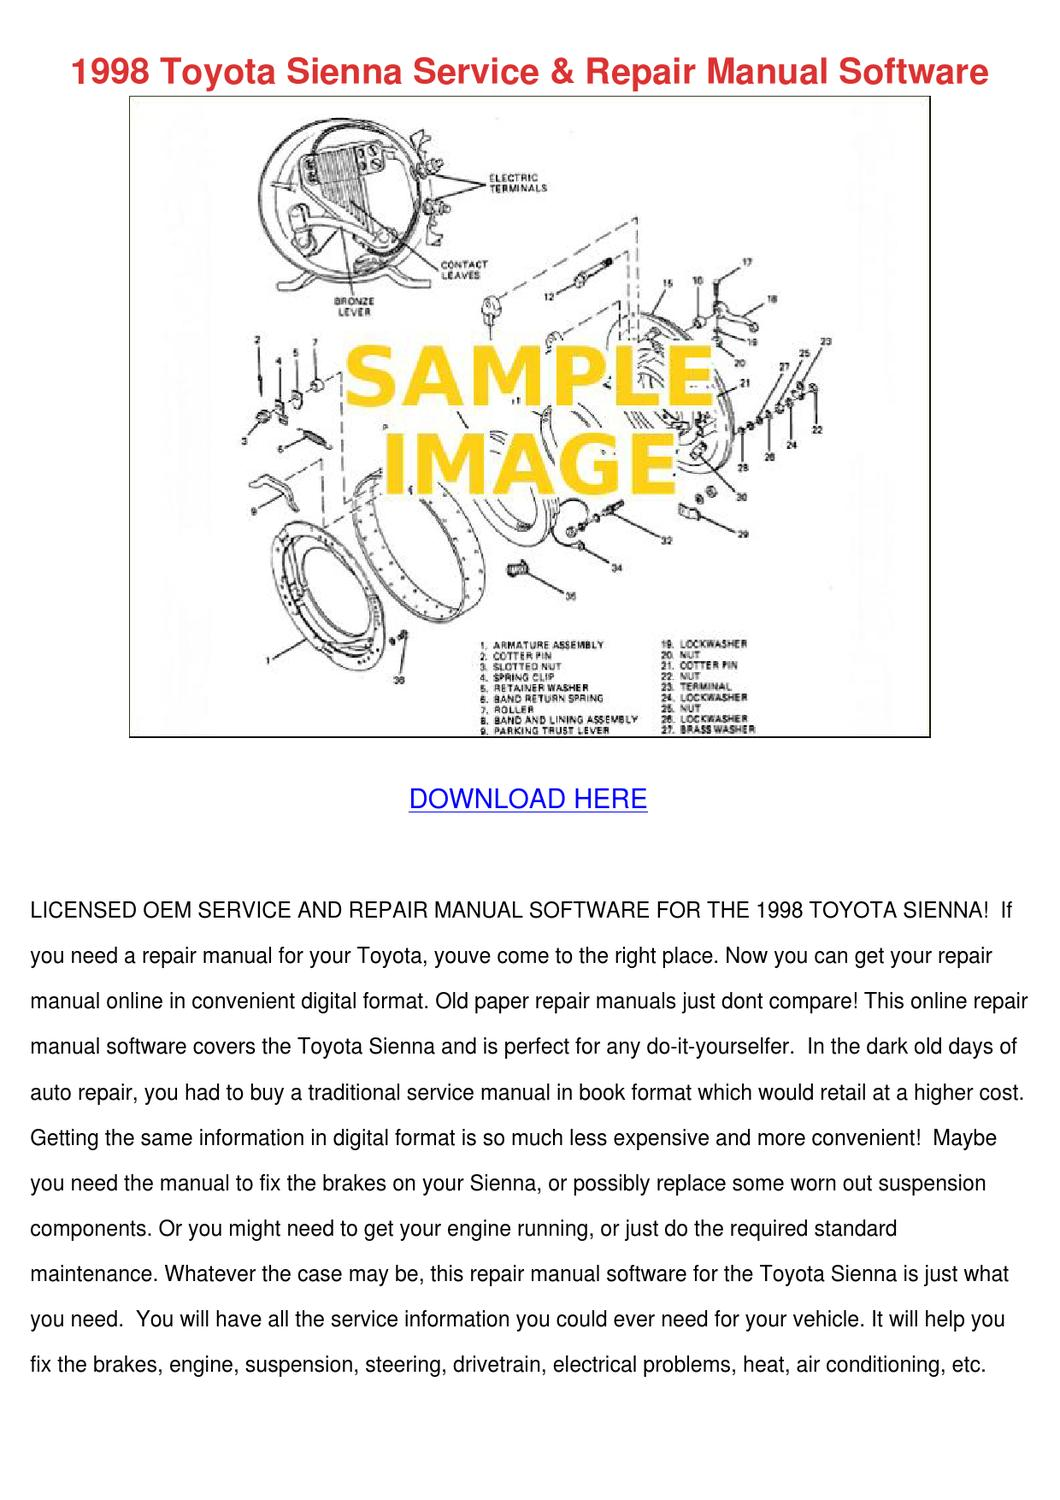 Toyota Sienna Service Manual: Engine assembly